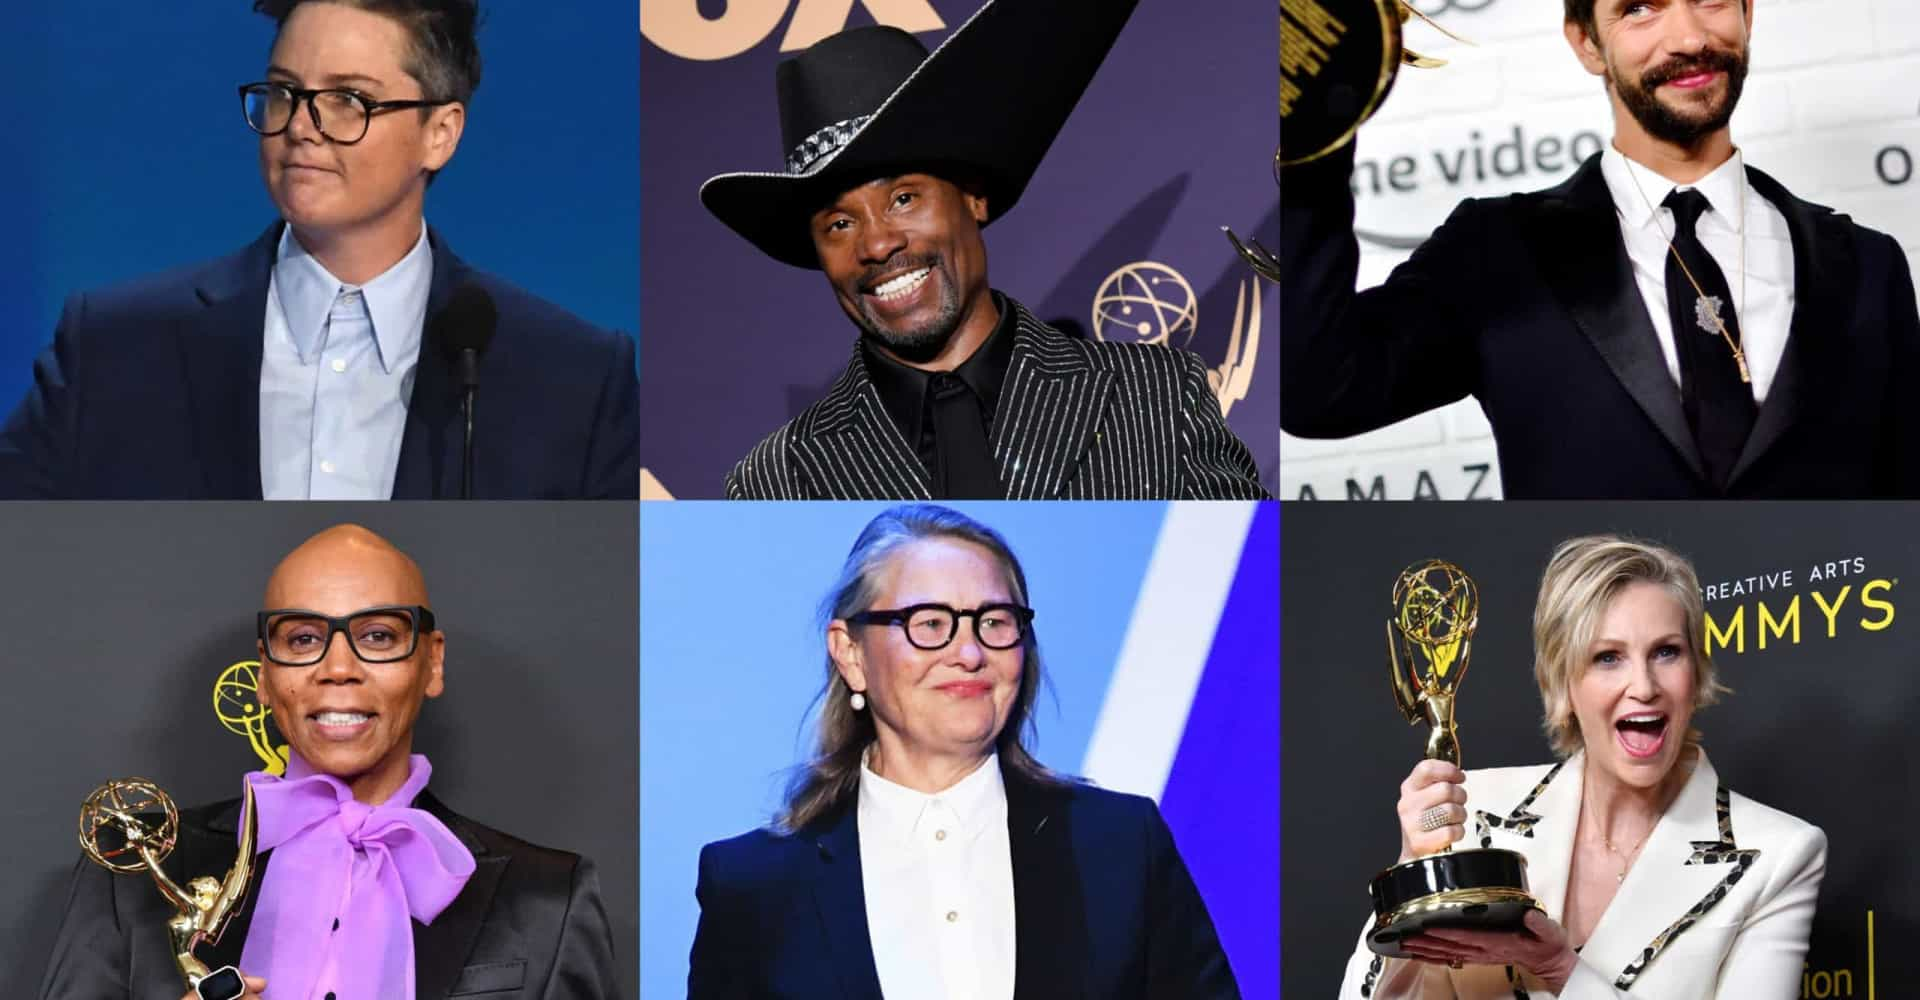 The major LGBT winners at the 2019 Emmys